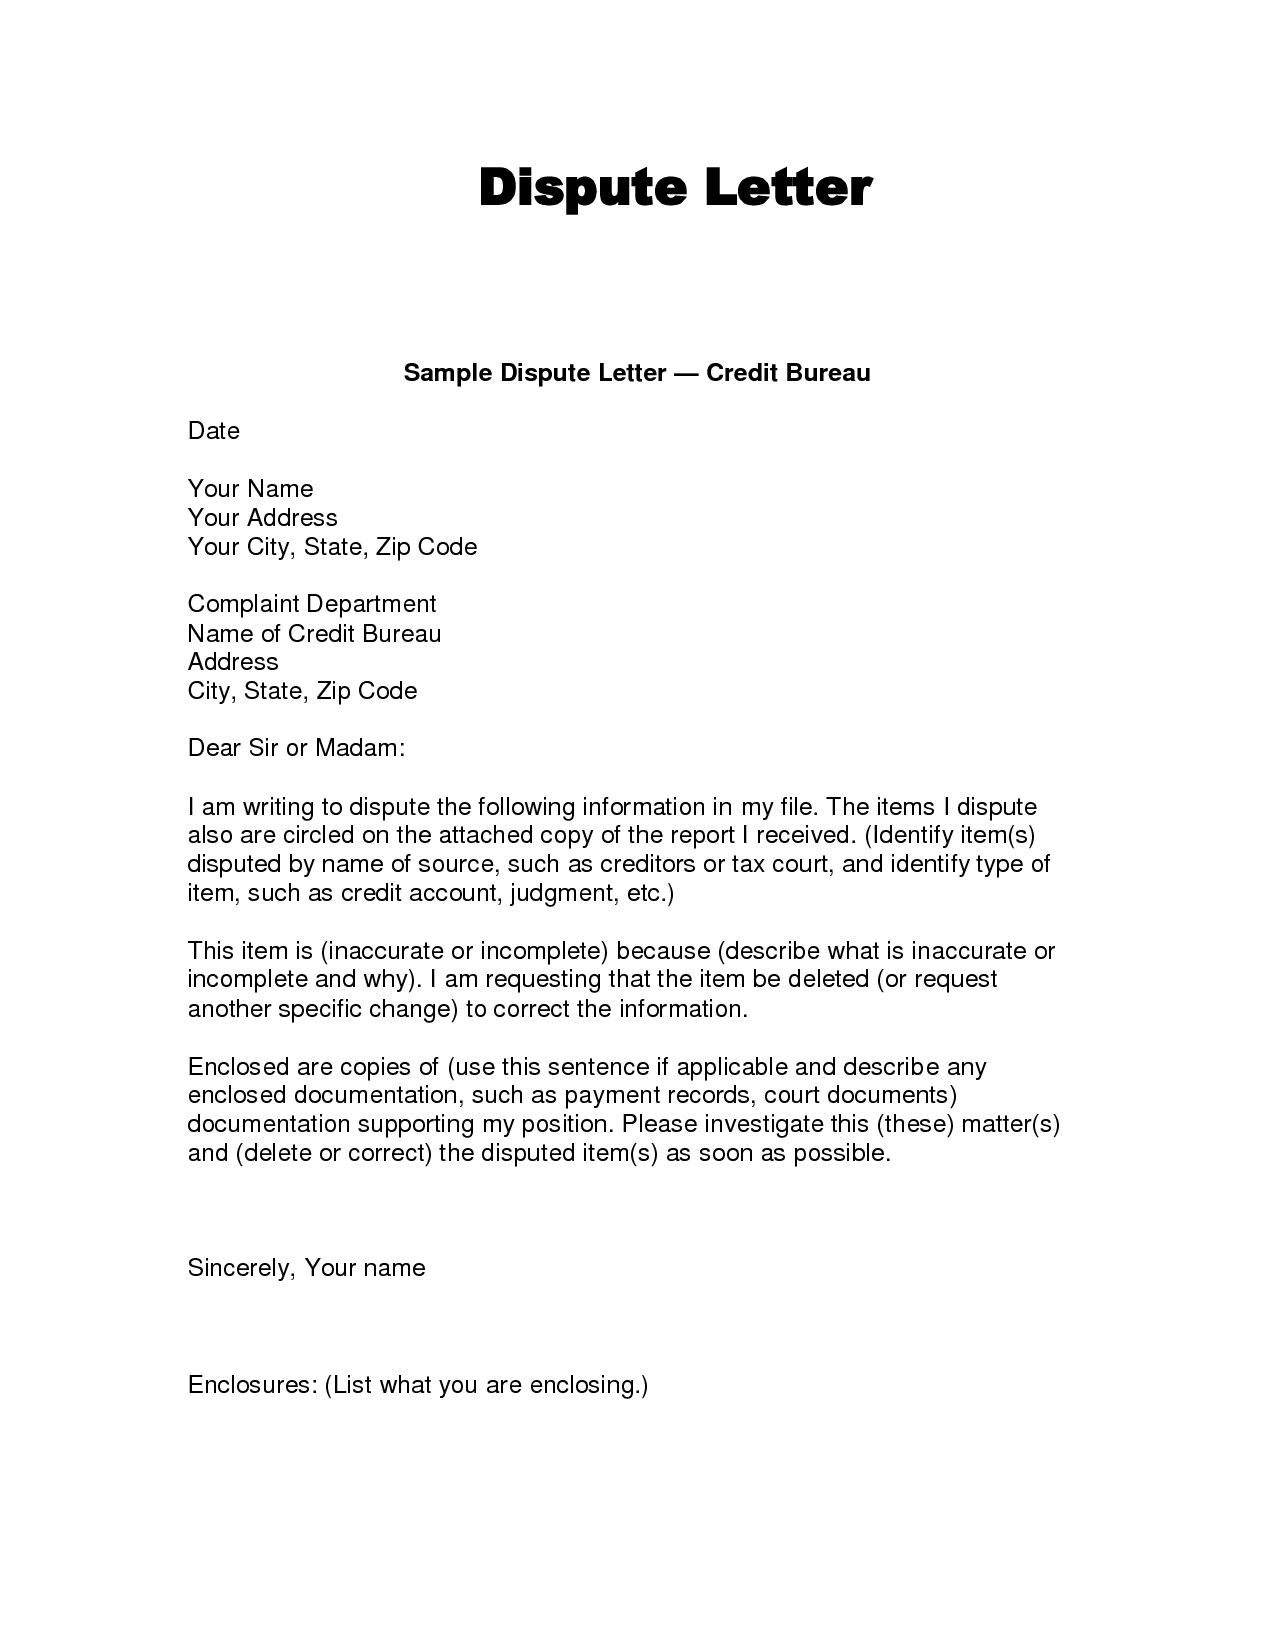 Credit Inquiry Removal Letter Template - Credit Dispute Letter Templates Acurnamedia